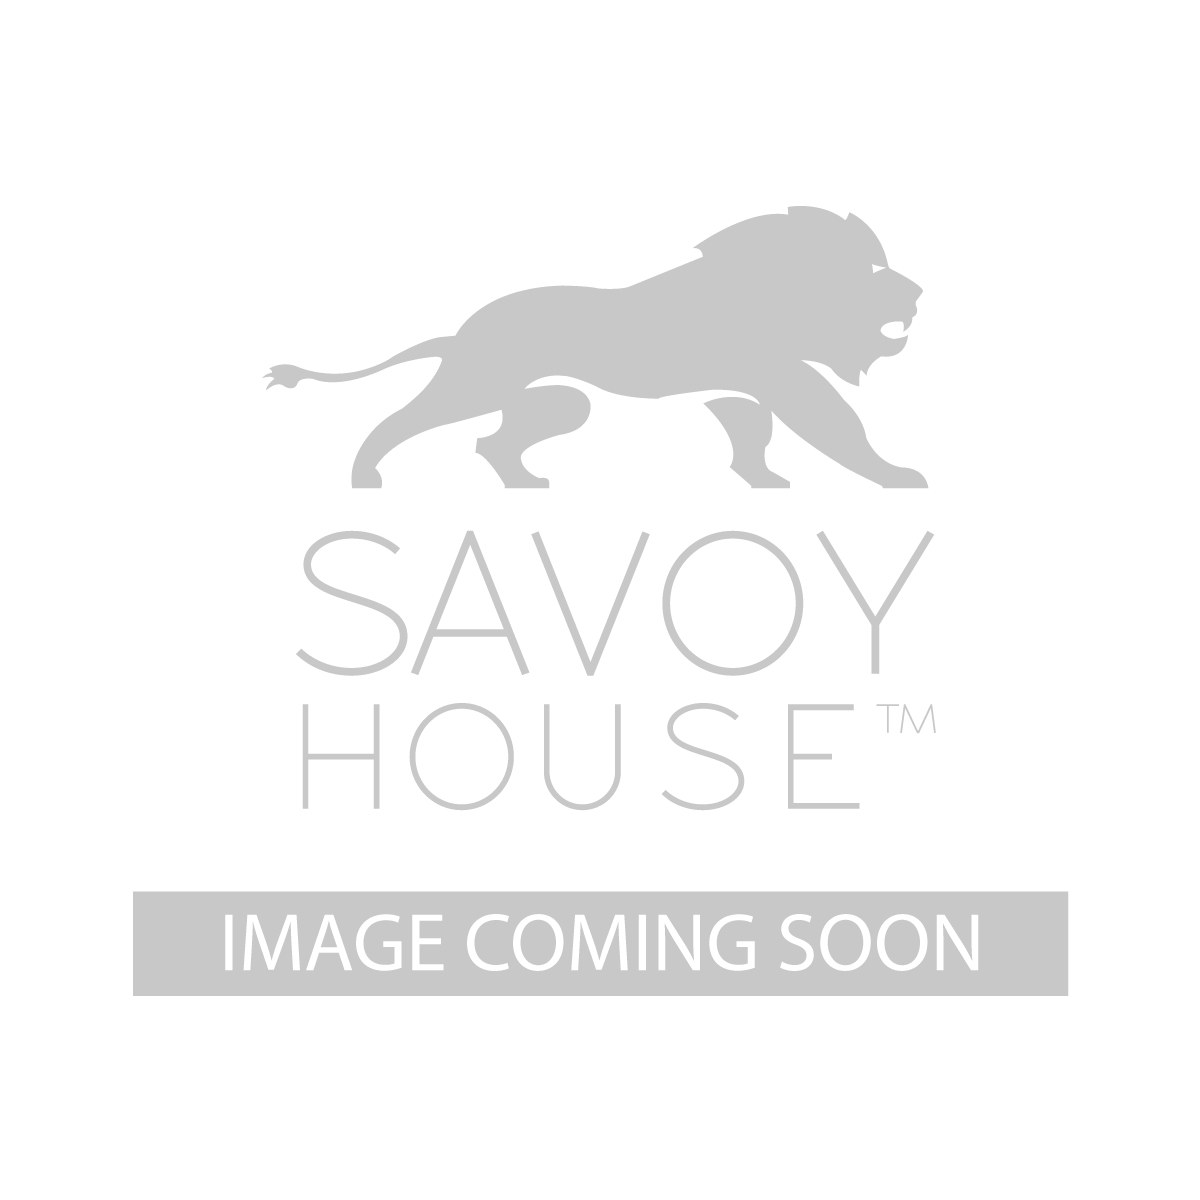 9 5005 1 79 Fulton 1 Light Sconce By Savoy House